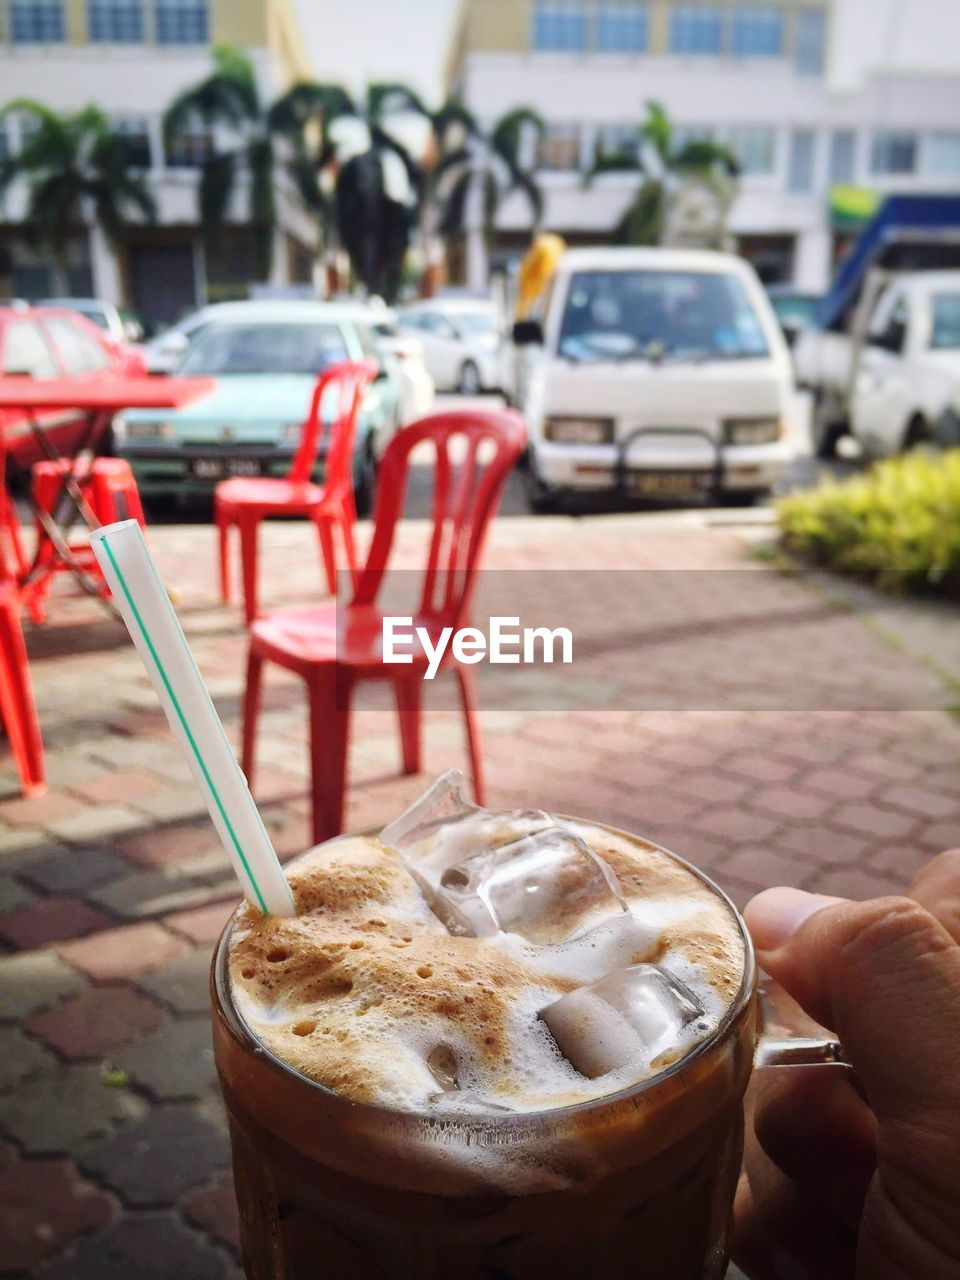 human body part, human hand, food and drink, coffee - drink, drink, coffee cup, focus on foreground, real people, outdoors, refreshment, day, one person, table, sidewalk cafe, cafe, disposable cup, close-up, iced coffee, food, holding, red, freshness, city, frothy drink, people